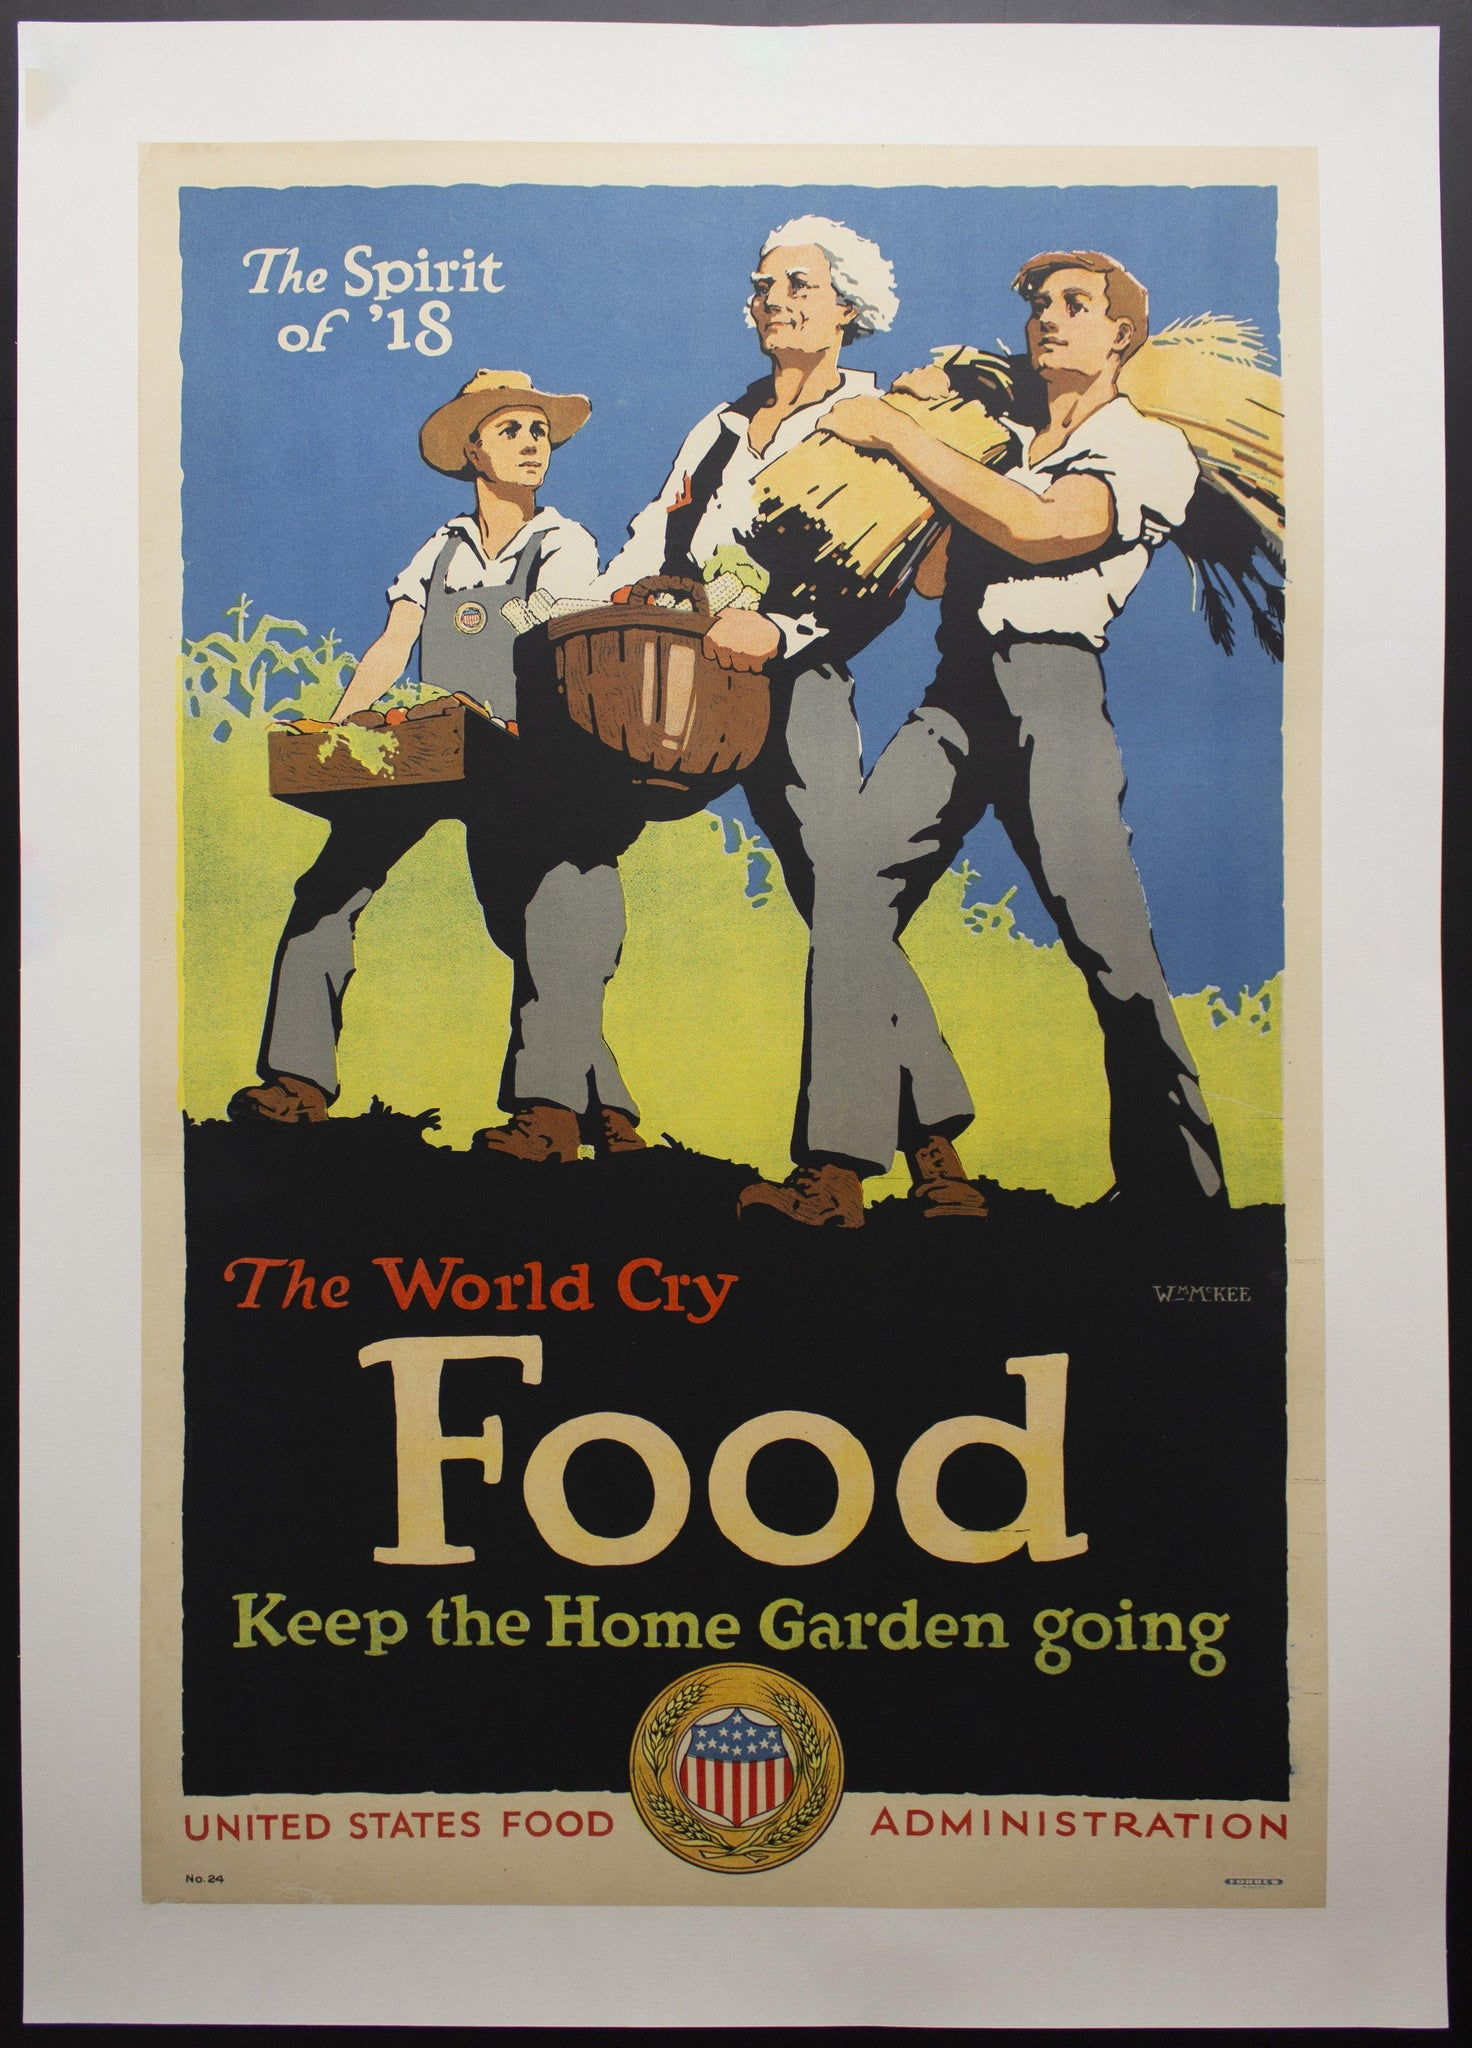 1918 United States Food Administration World Cry Food by William McKee WWI - Golden Age Posters